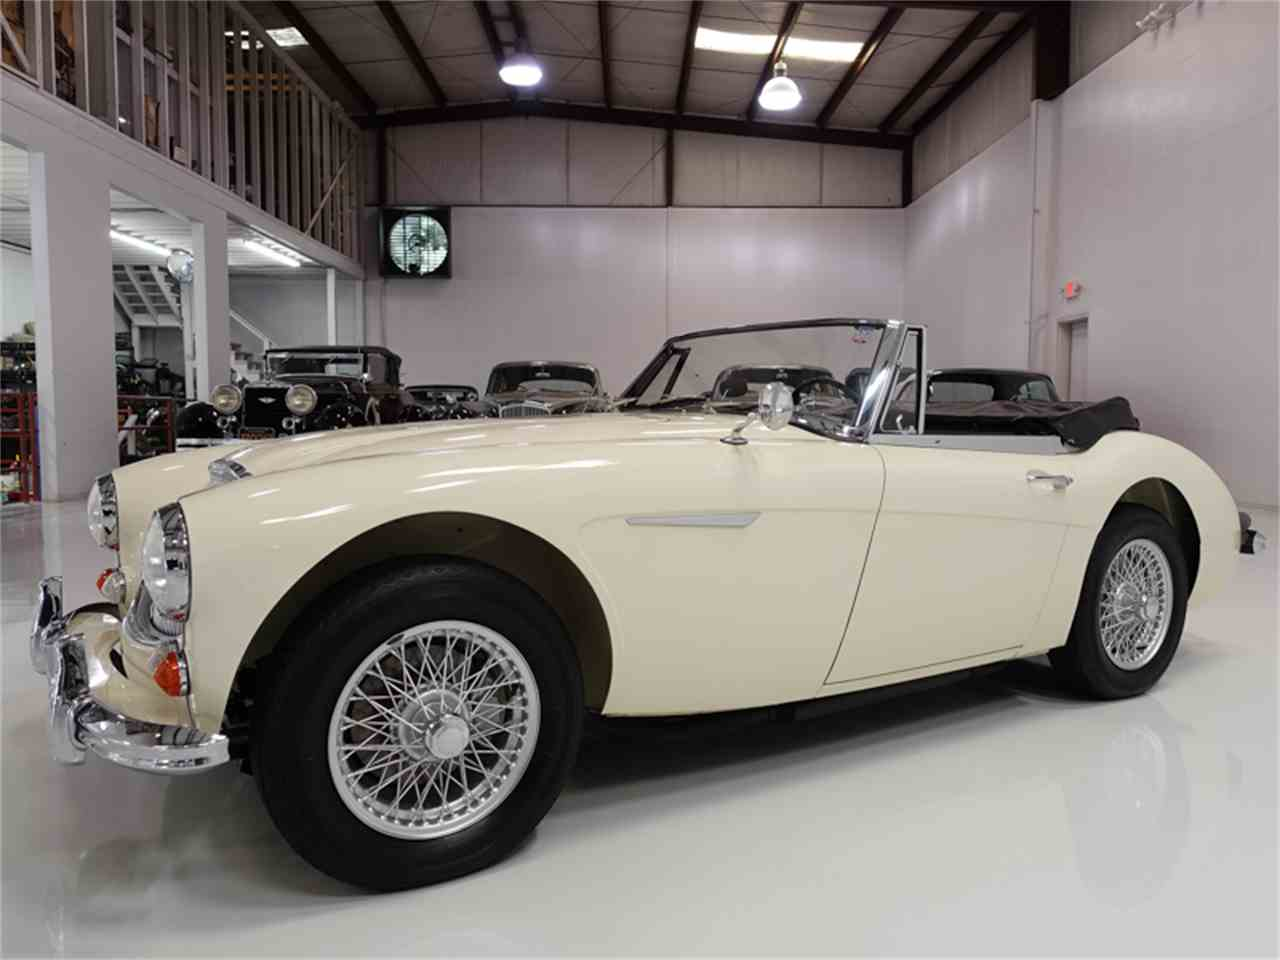 1967 Austin-Healey 3000 Mark III for Sale - CC-993074